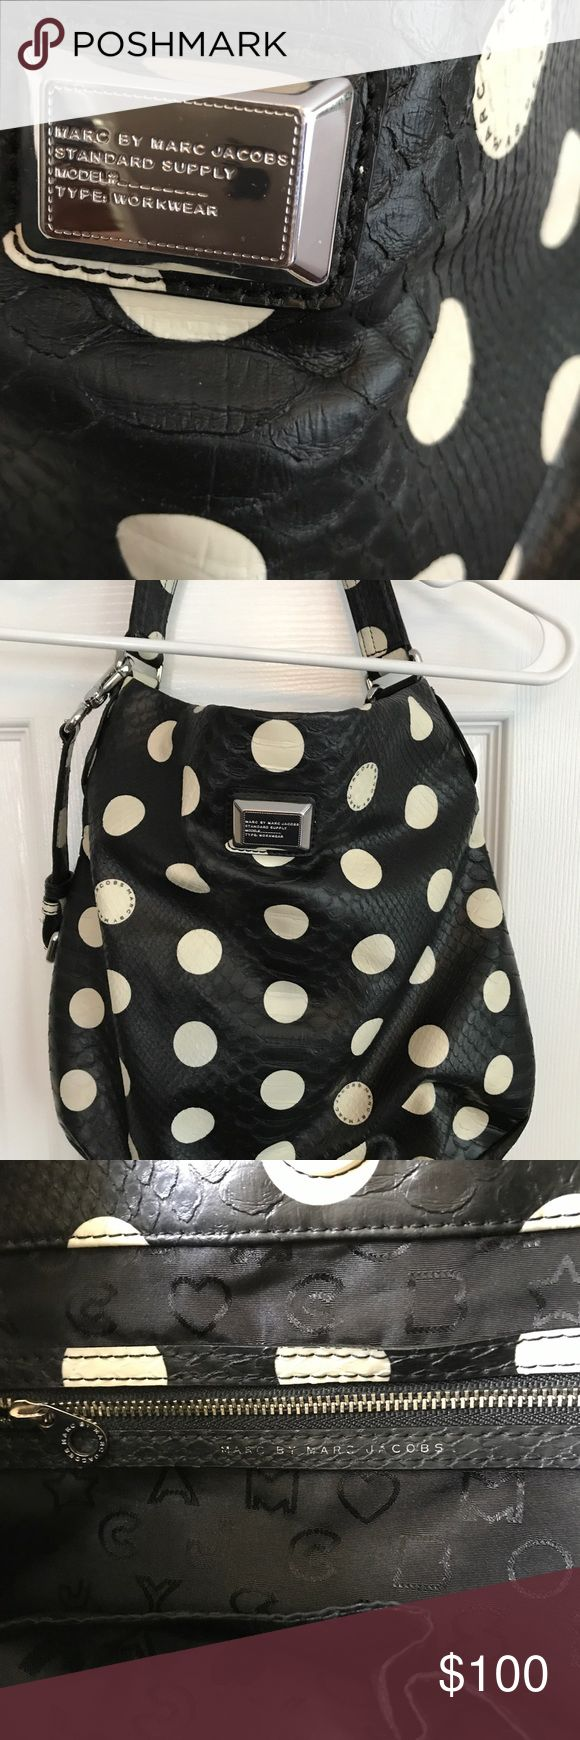 Marc by Marc jacobs hobo bag Beautiful! Great condition. No rips or tears. Lots of room for all of your items.  Detachable shoulder strap Marc By Marc Jacobs Bags Shoulder Bags